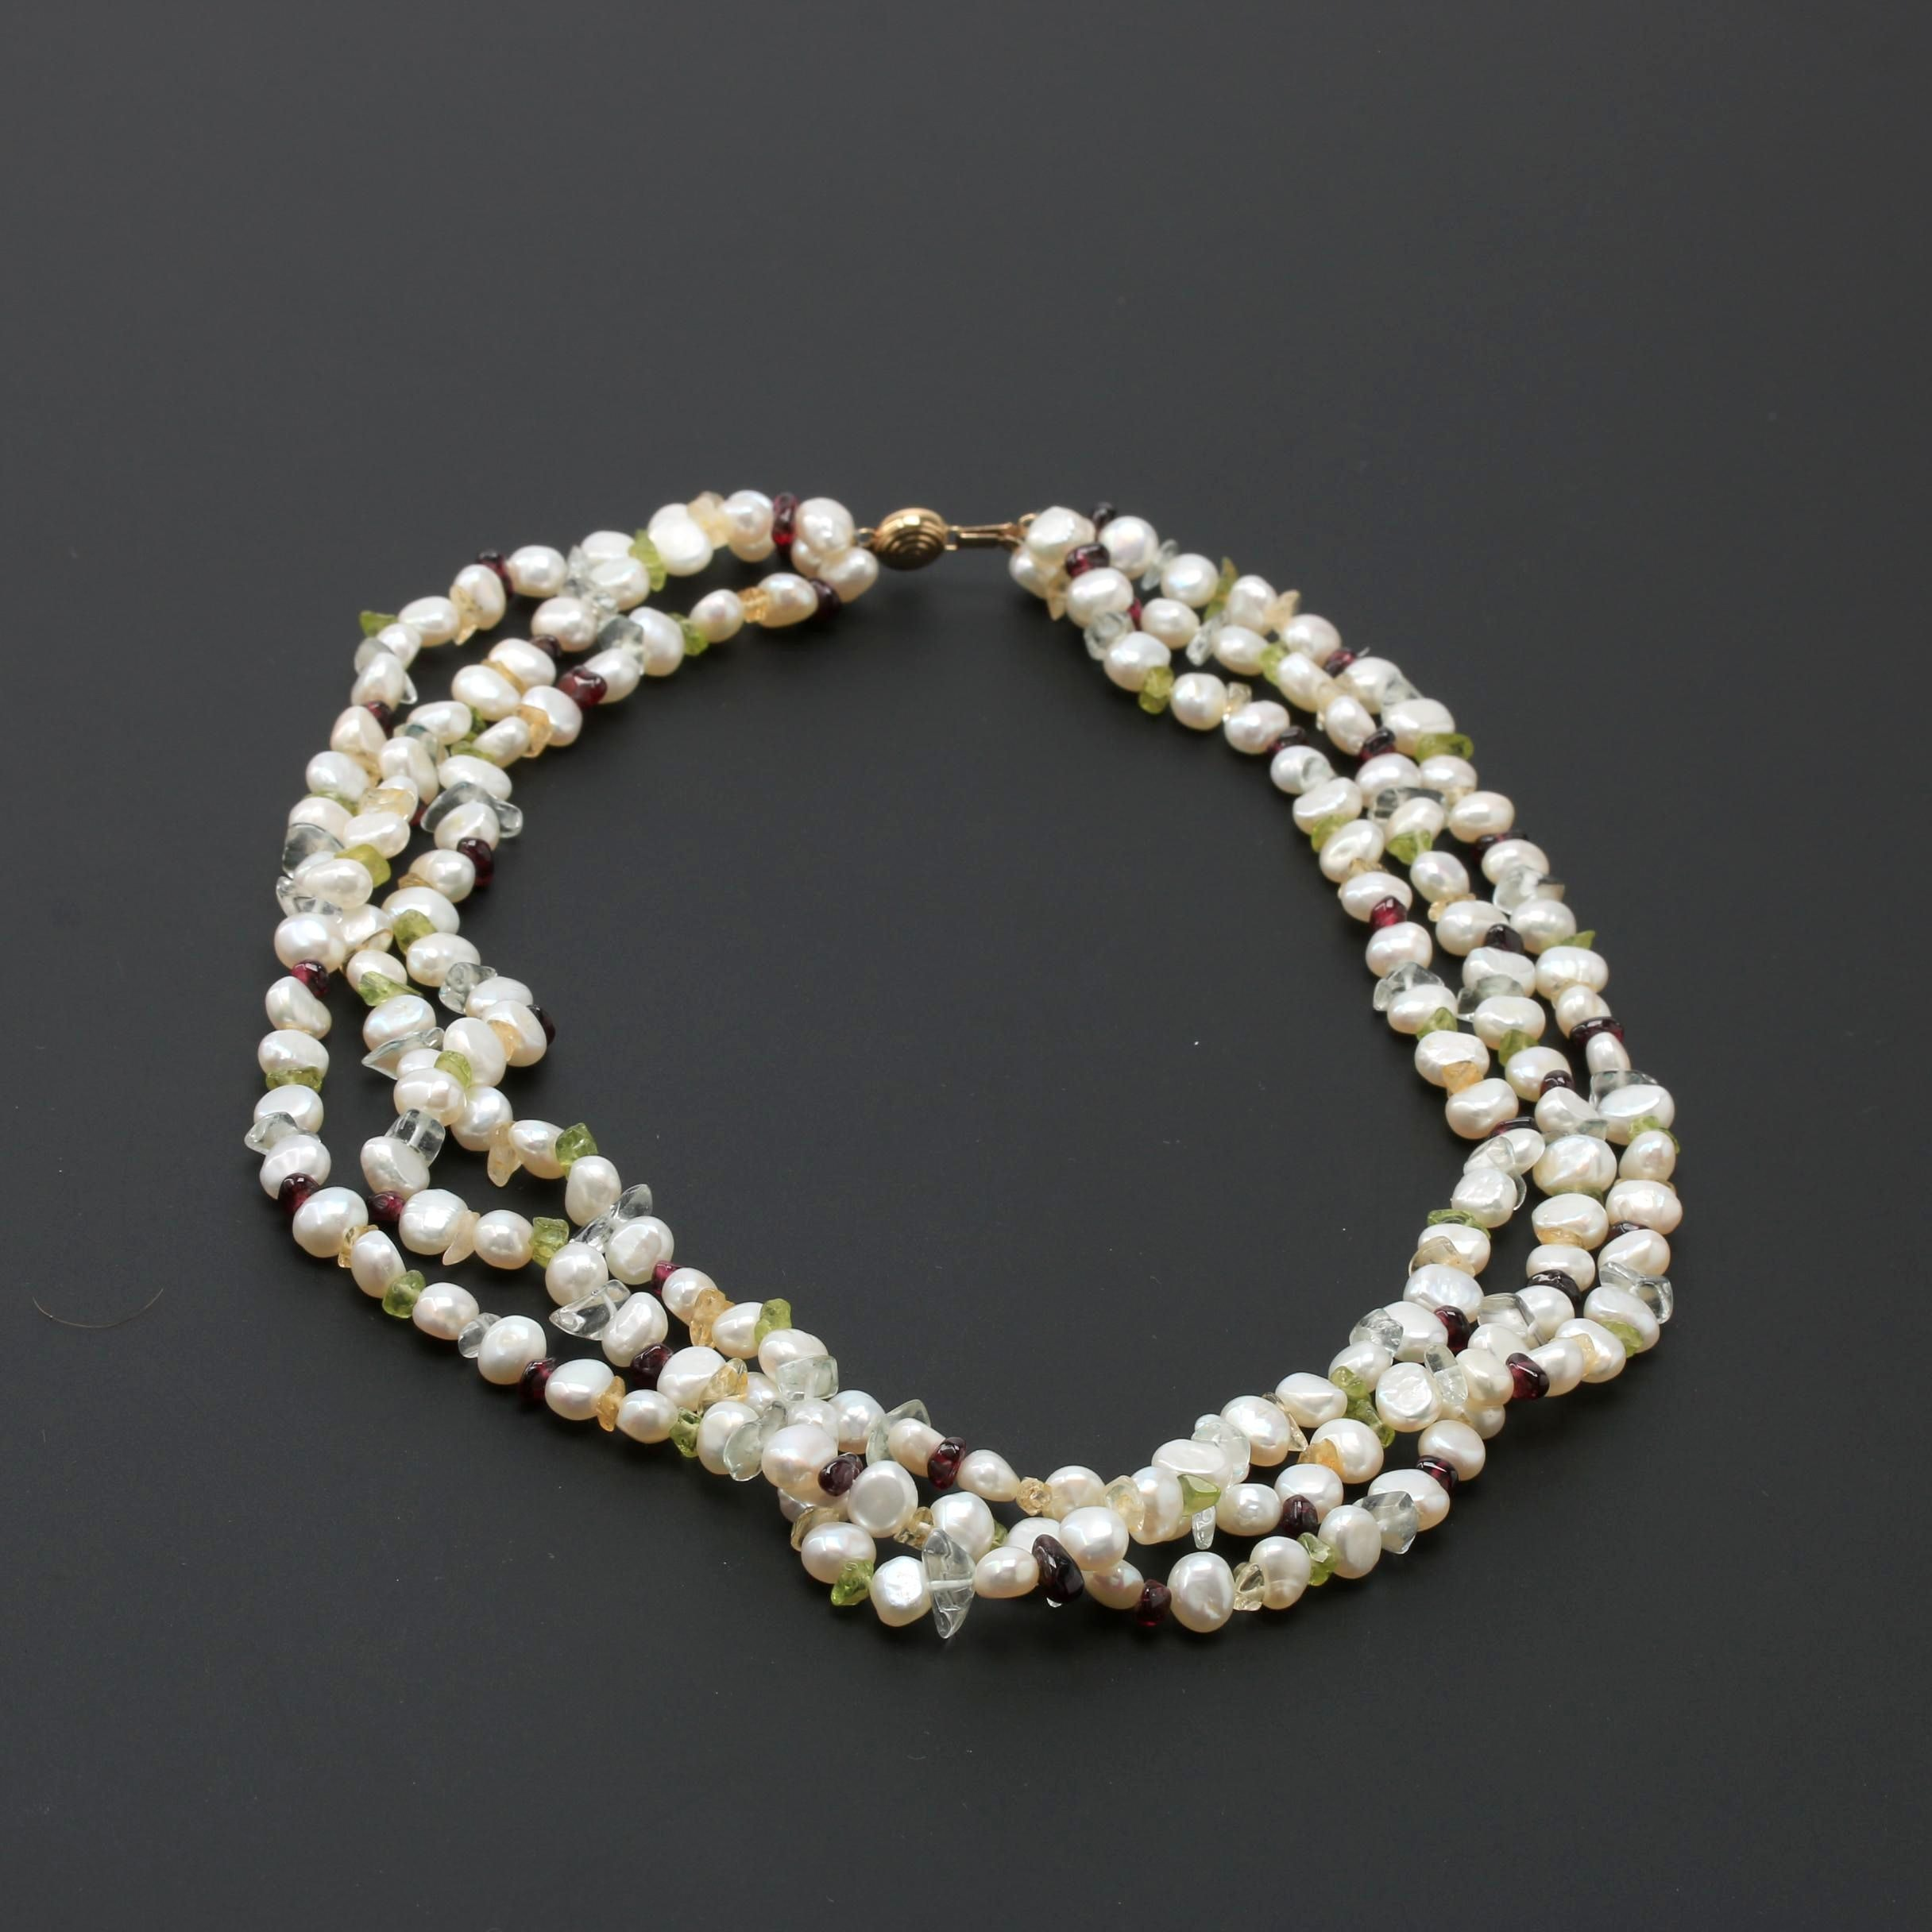 14K Yellow Gold Cultured Pearl and Gemstone Necklace